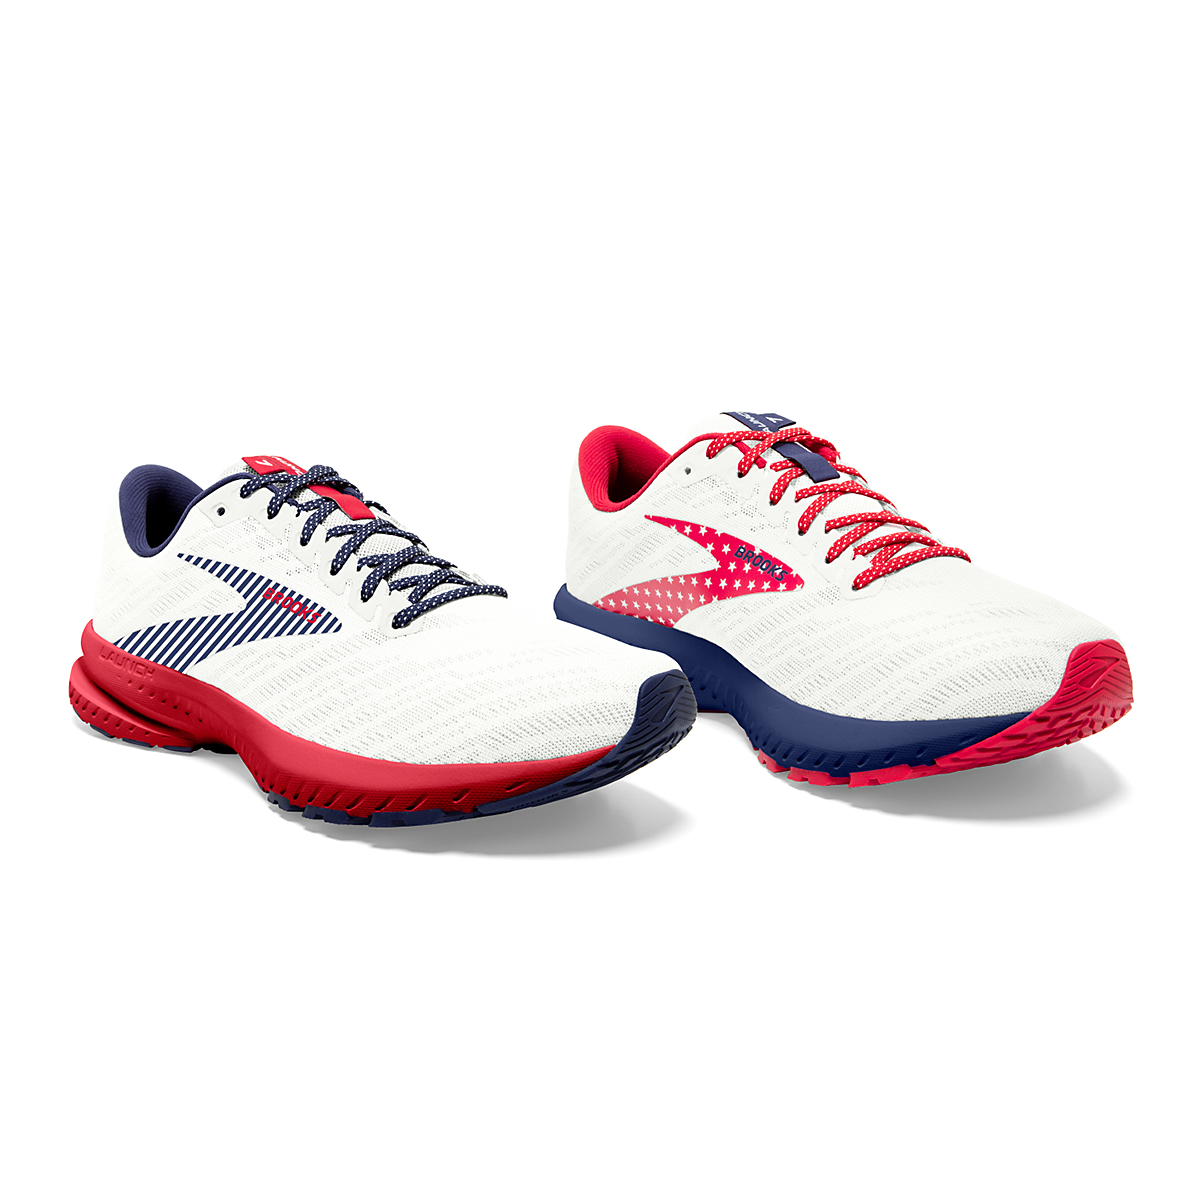 Women's Brooks Launch 7 Usa Running Shoe - Color: White/Blue/Red - Size: 6.5 - Width: Regular, White/Blue/Red, large, image 3